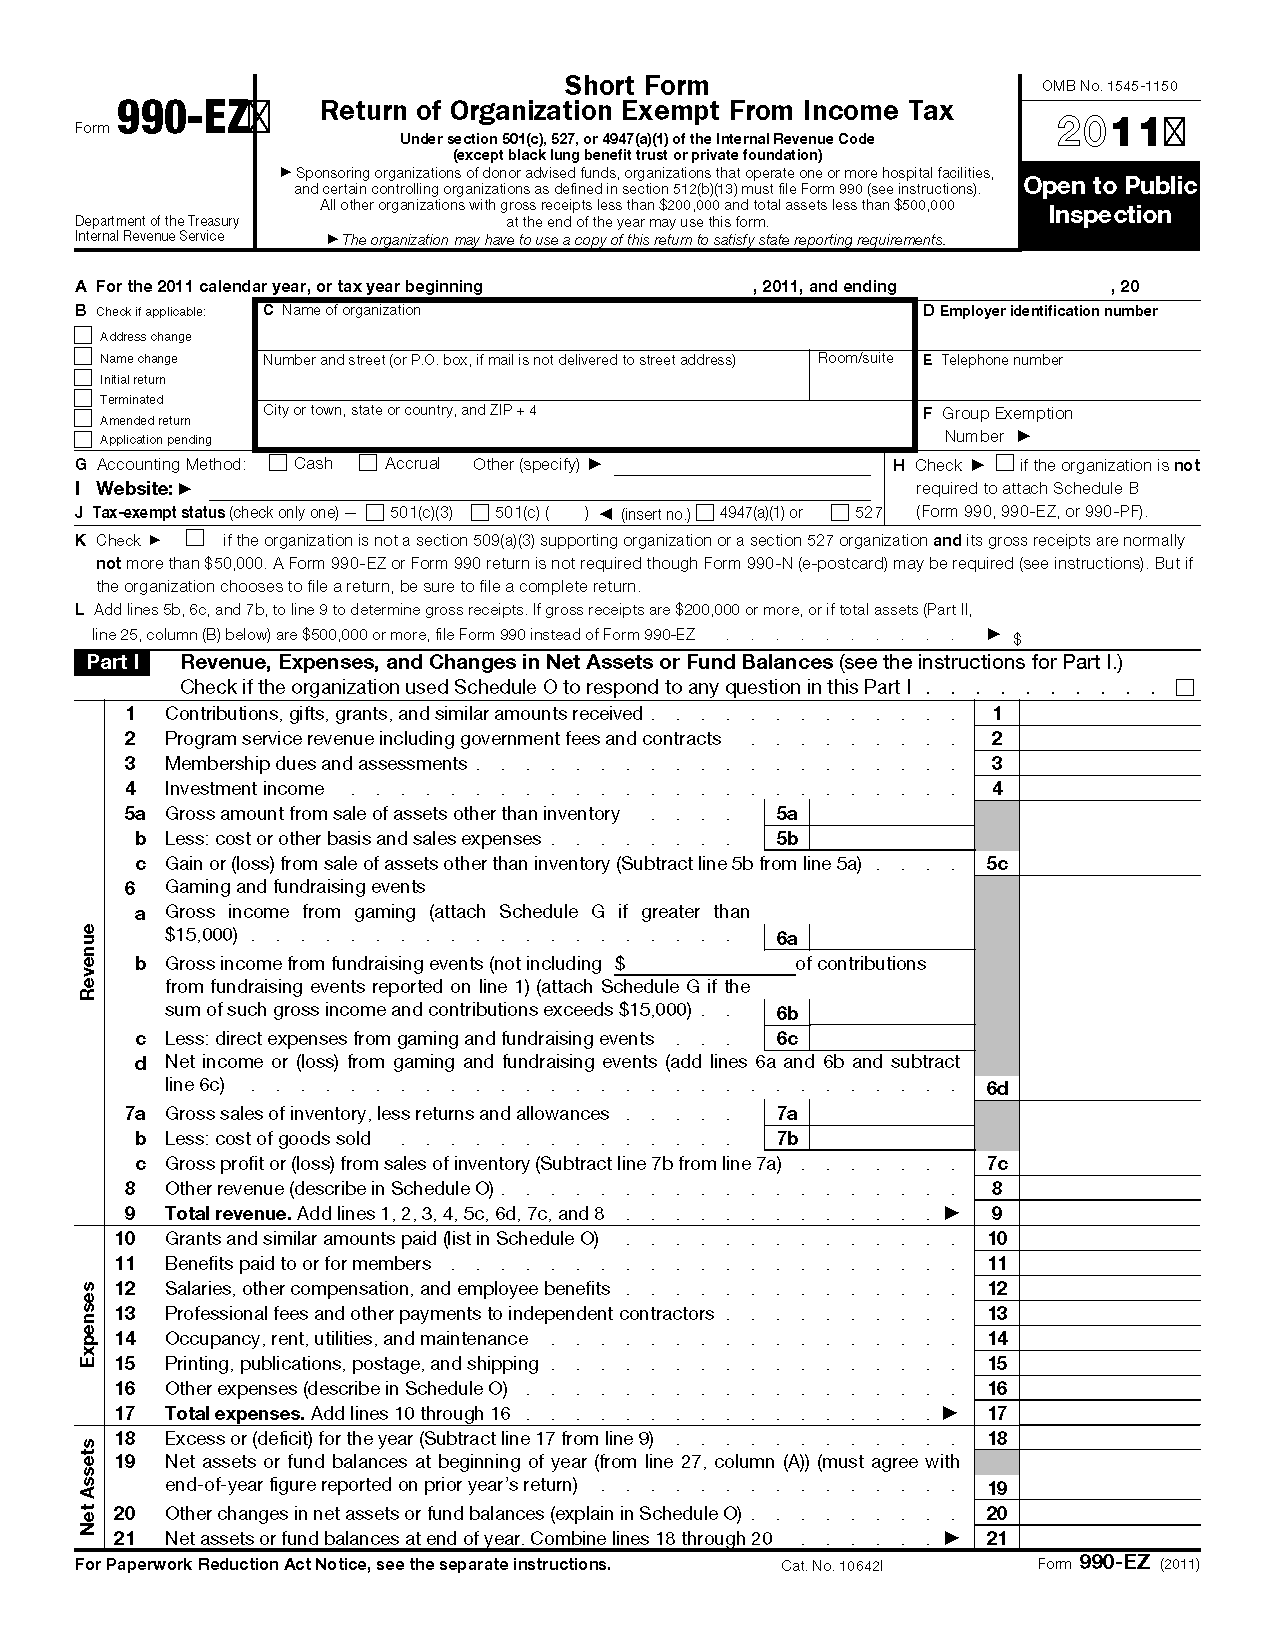 Find, Download, Print, And Mail 2013 Federal IRS Tax Forms.